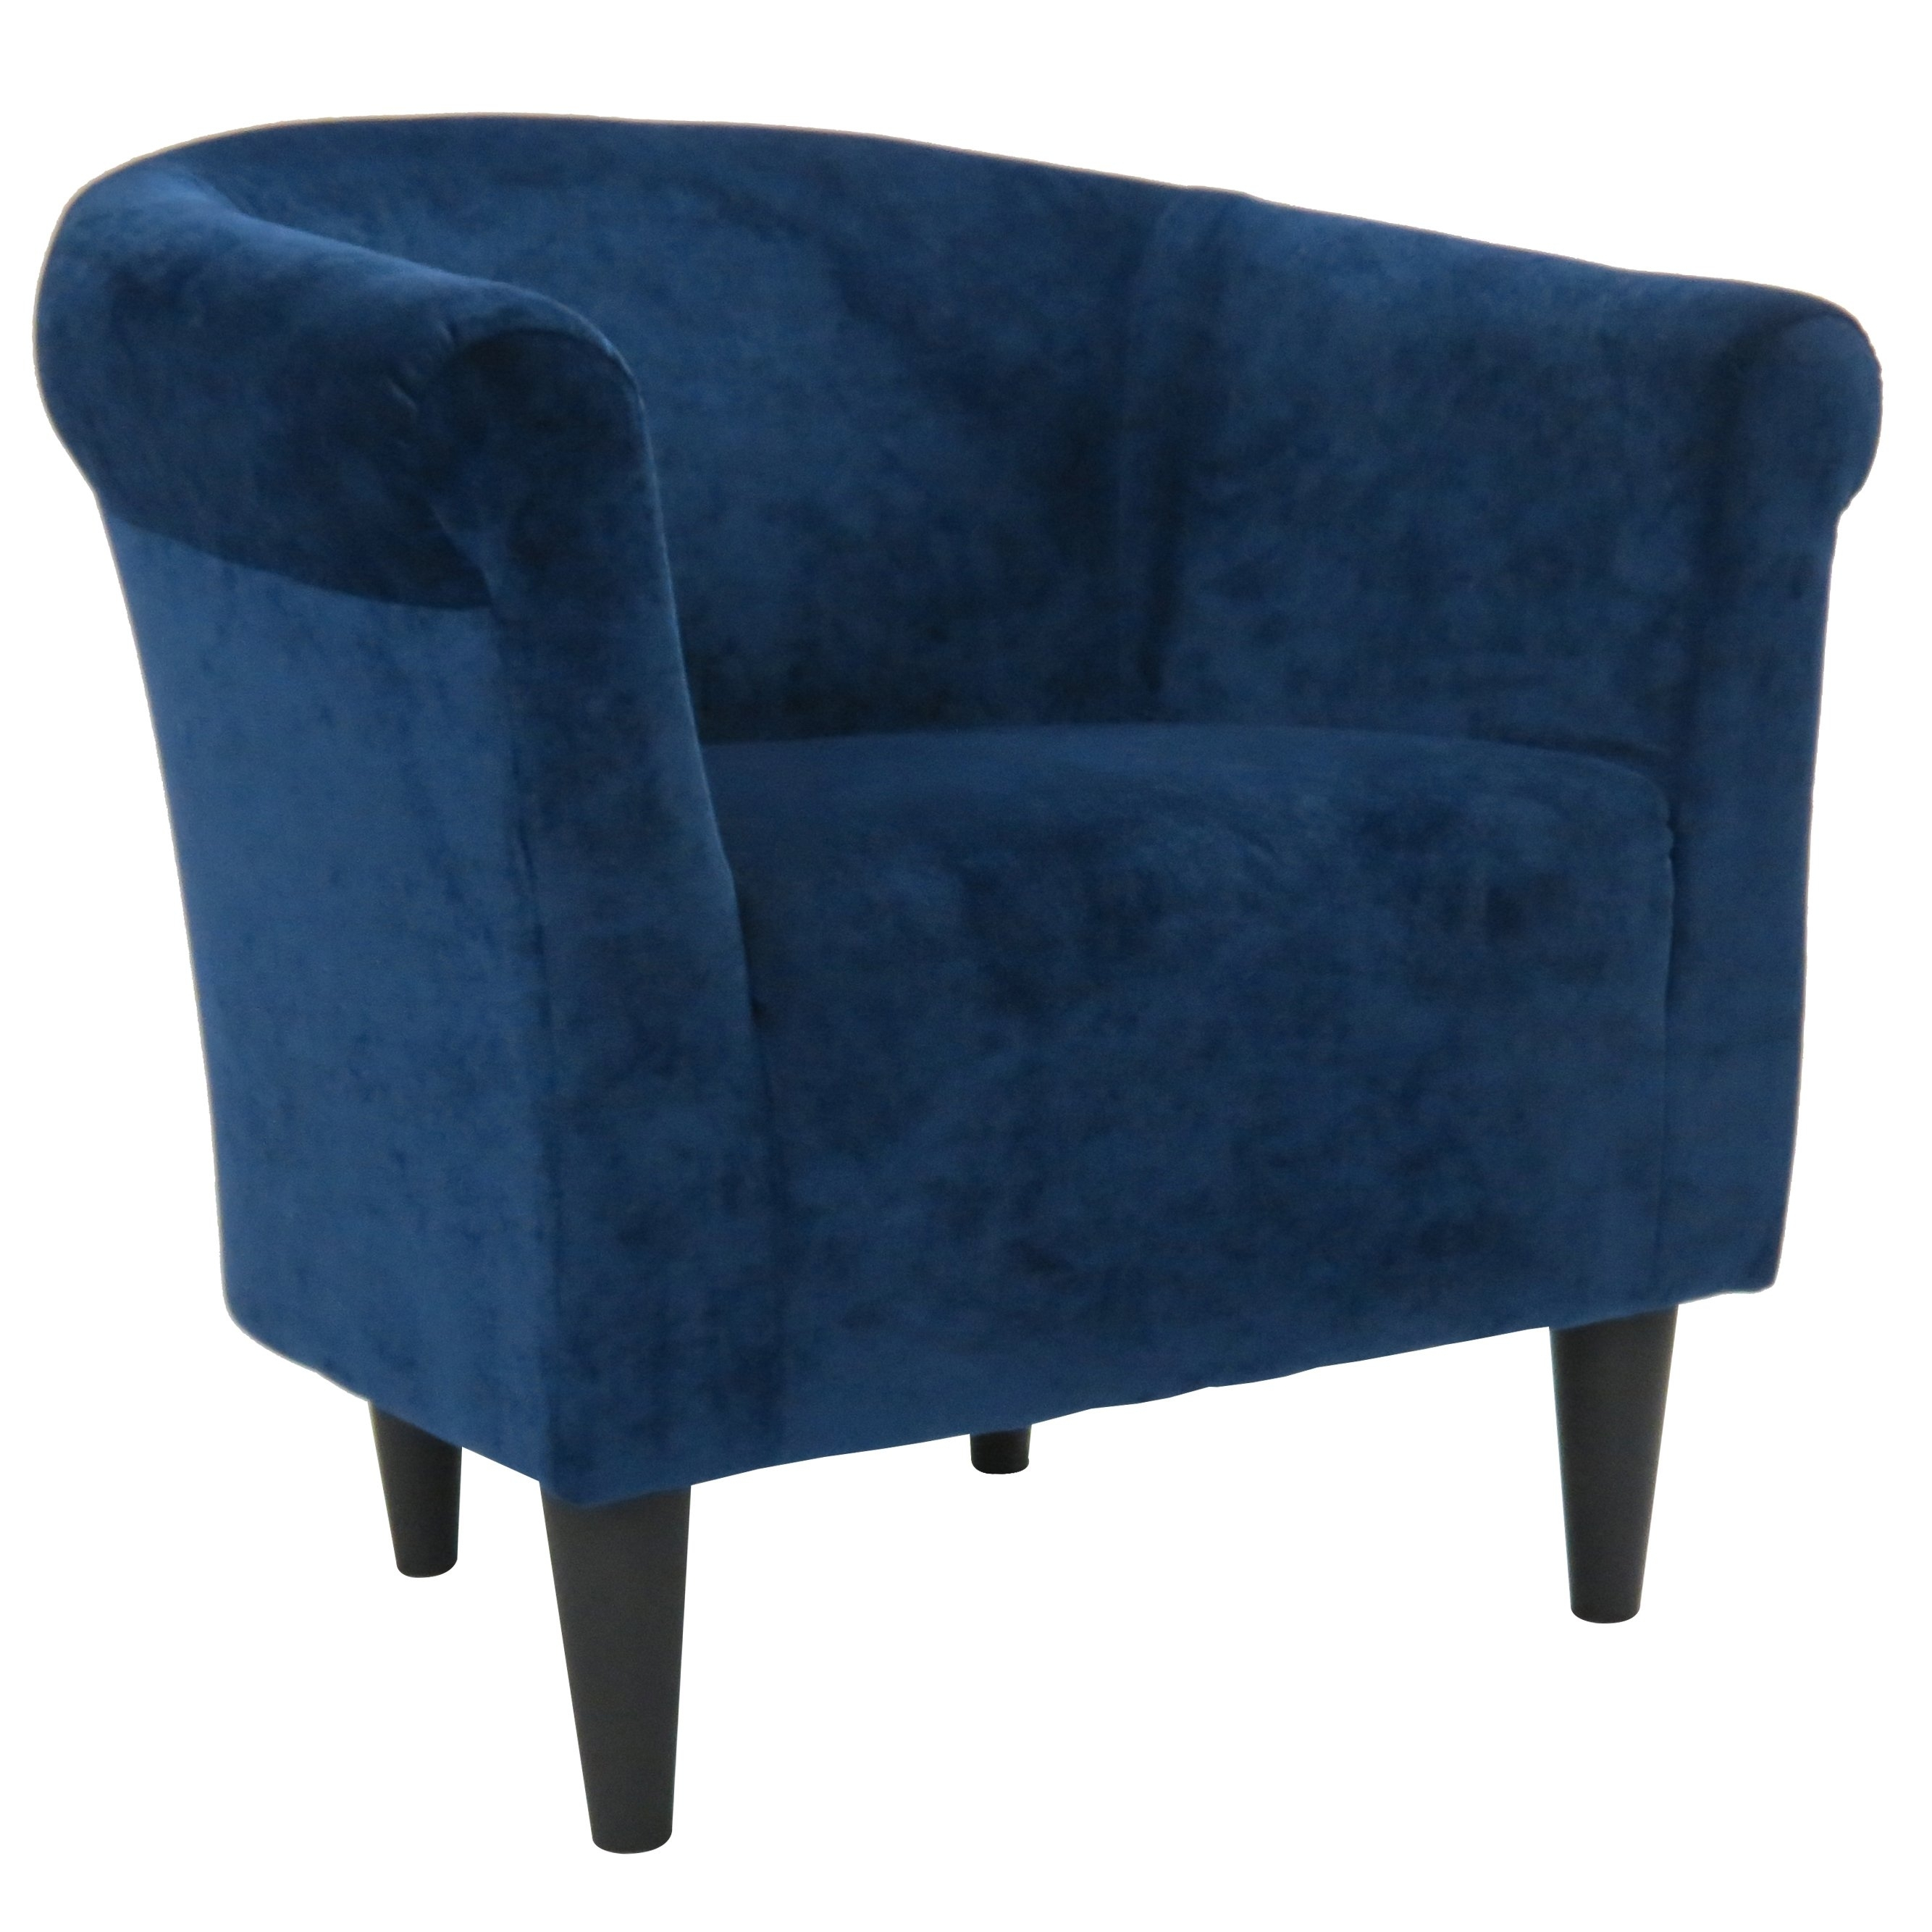 Our Best Living Regarding Trendy Nautical Blue Side Chairs (#15 of 20)